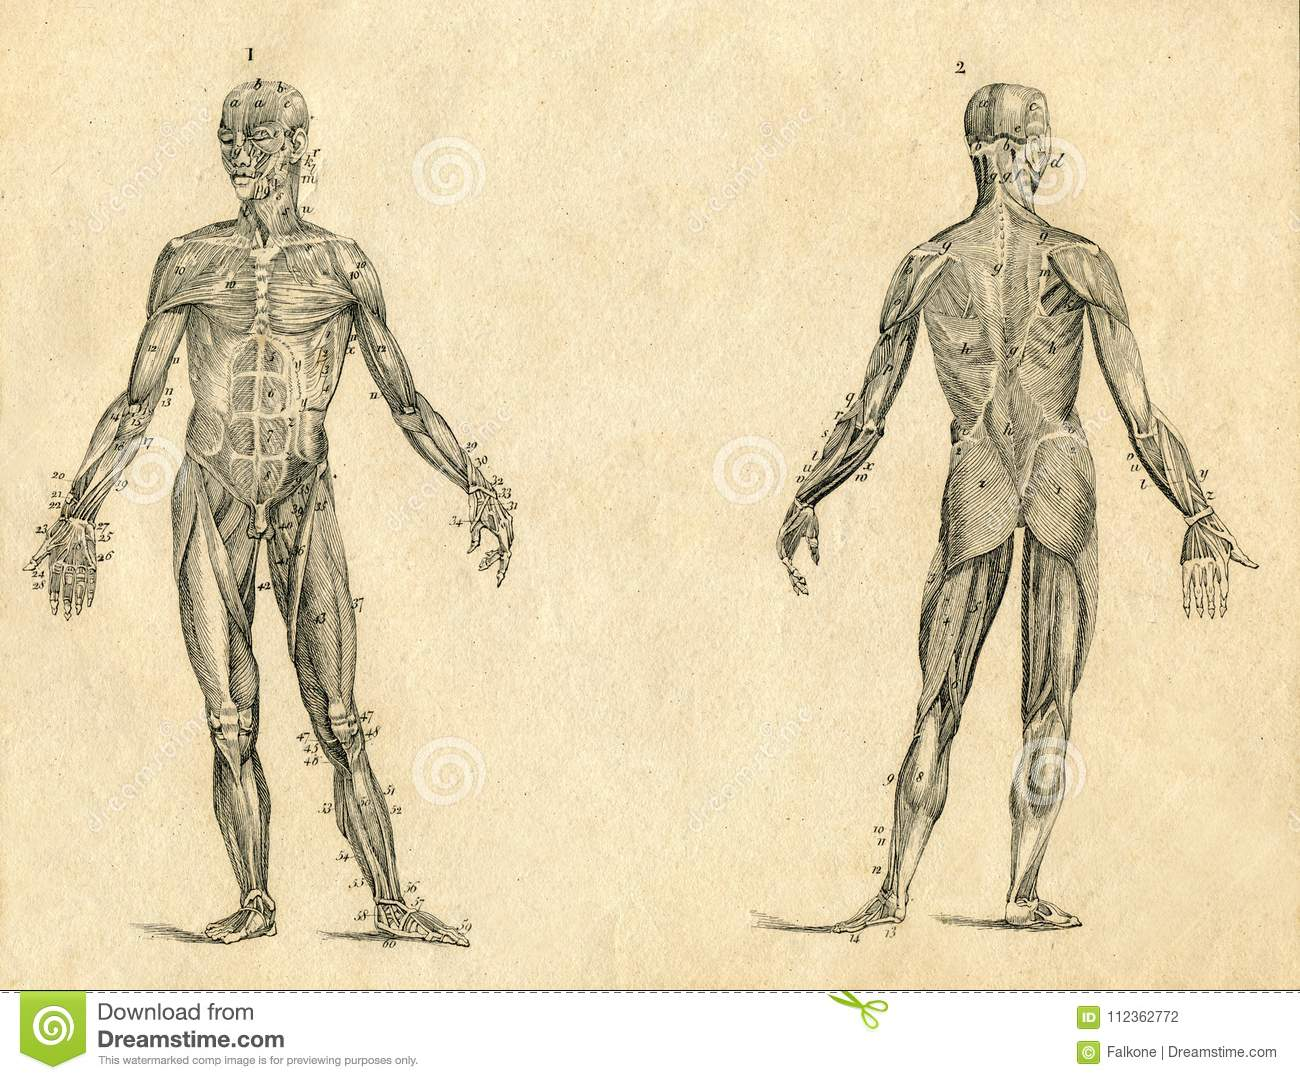 Human Muscle Anatomy Vintage Drawing Engraved Illustration Stock ...